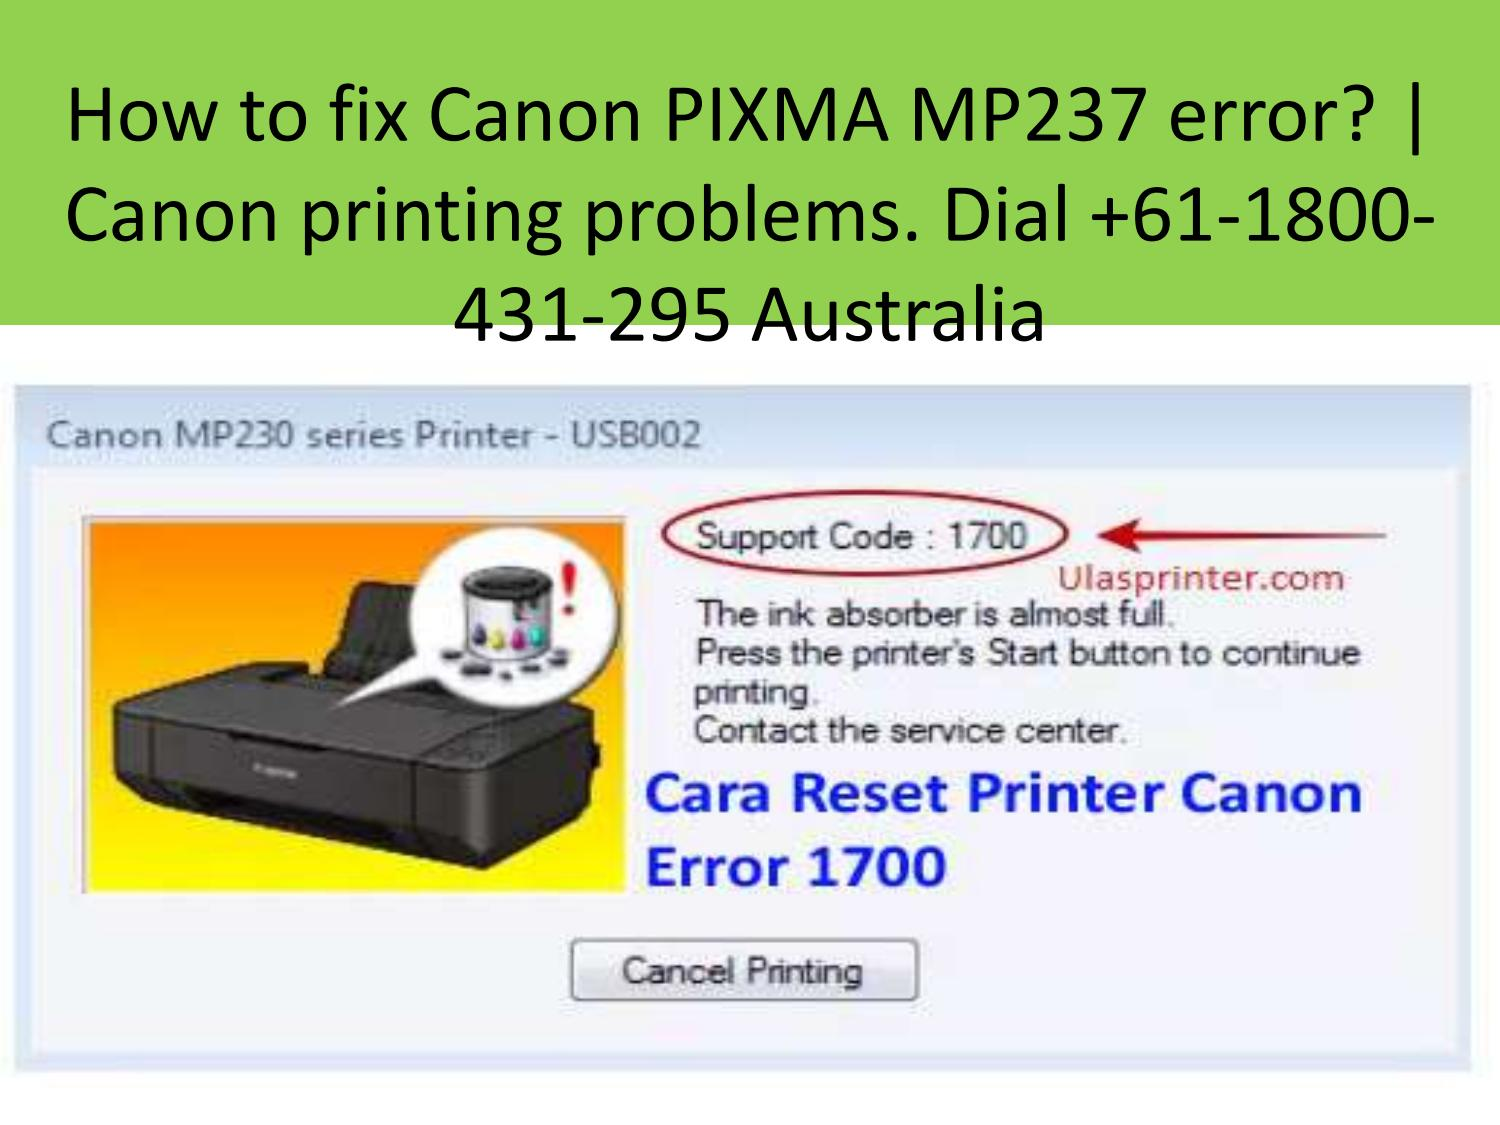 How To Fix Canon Pixma Mp237 Error Canon Printing Problems By